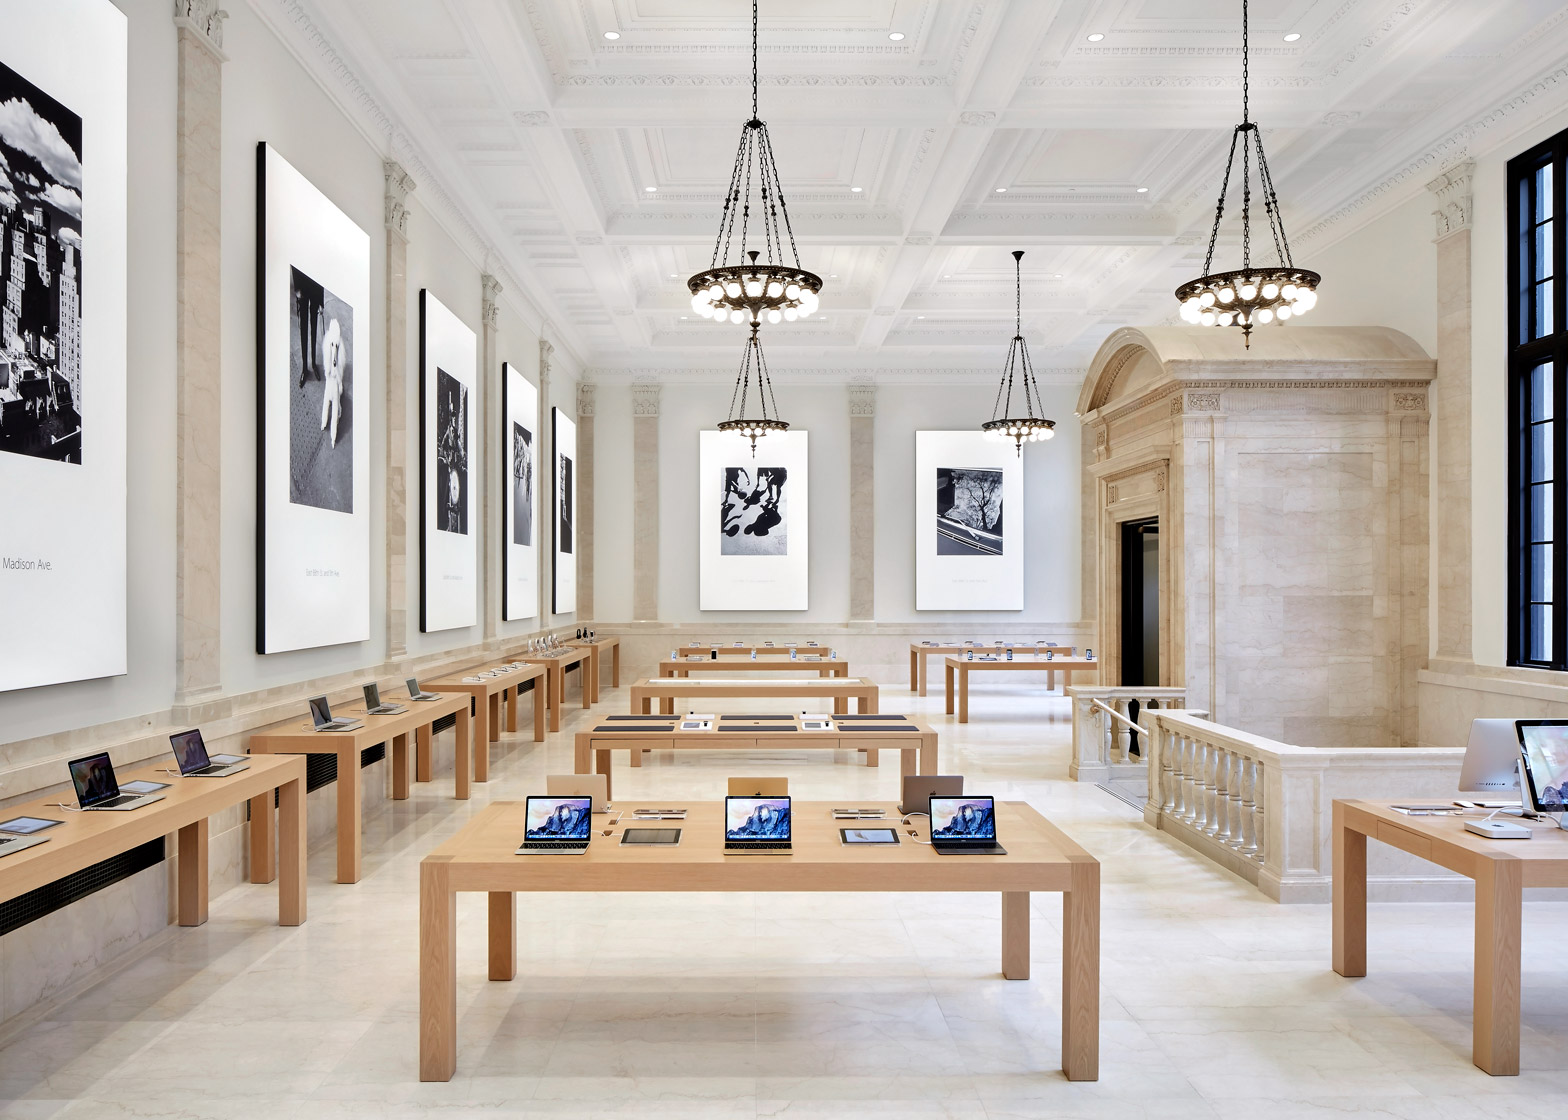 Apple receives New York preservation award